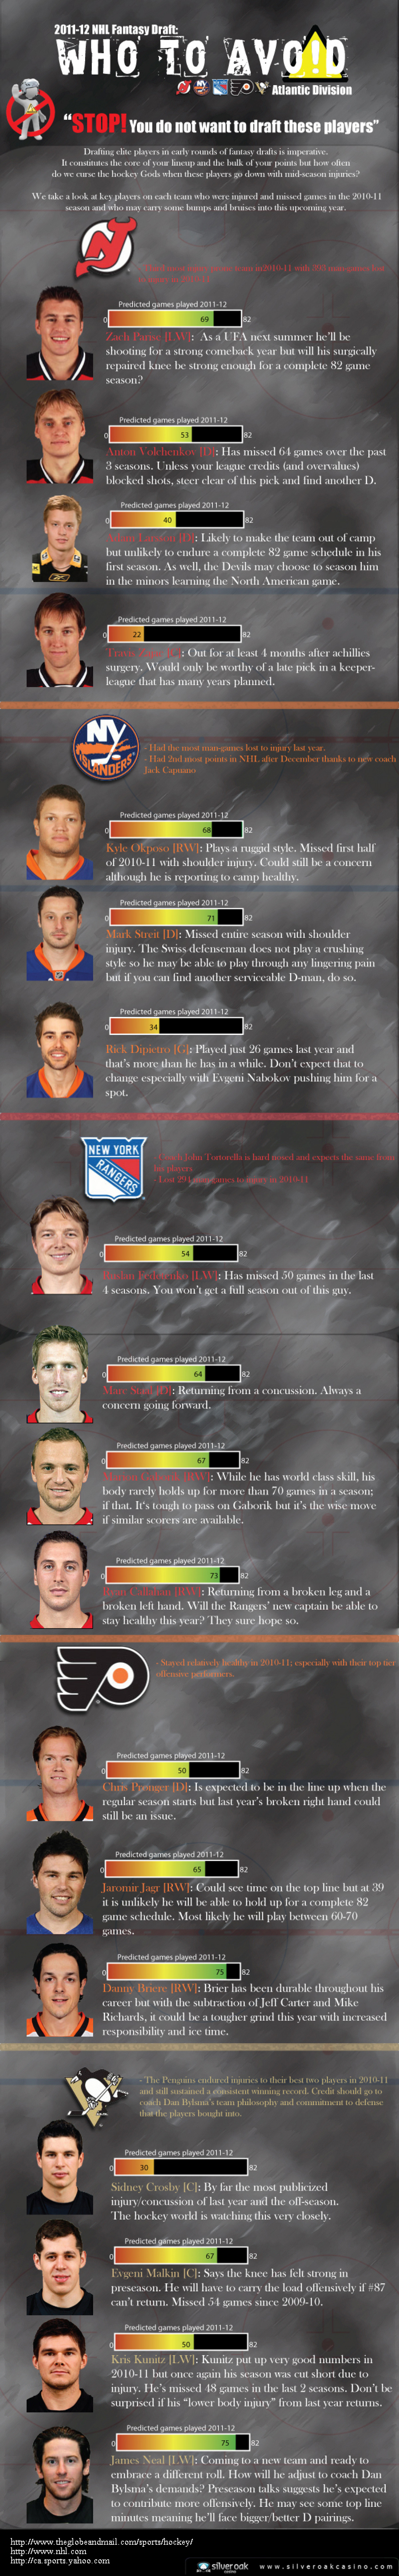 2010-2011 NHL Fantasy Draft Who to Avoid  Infographic